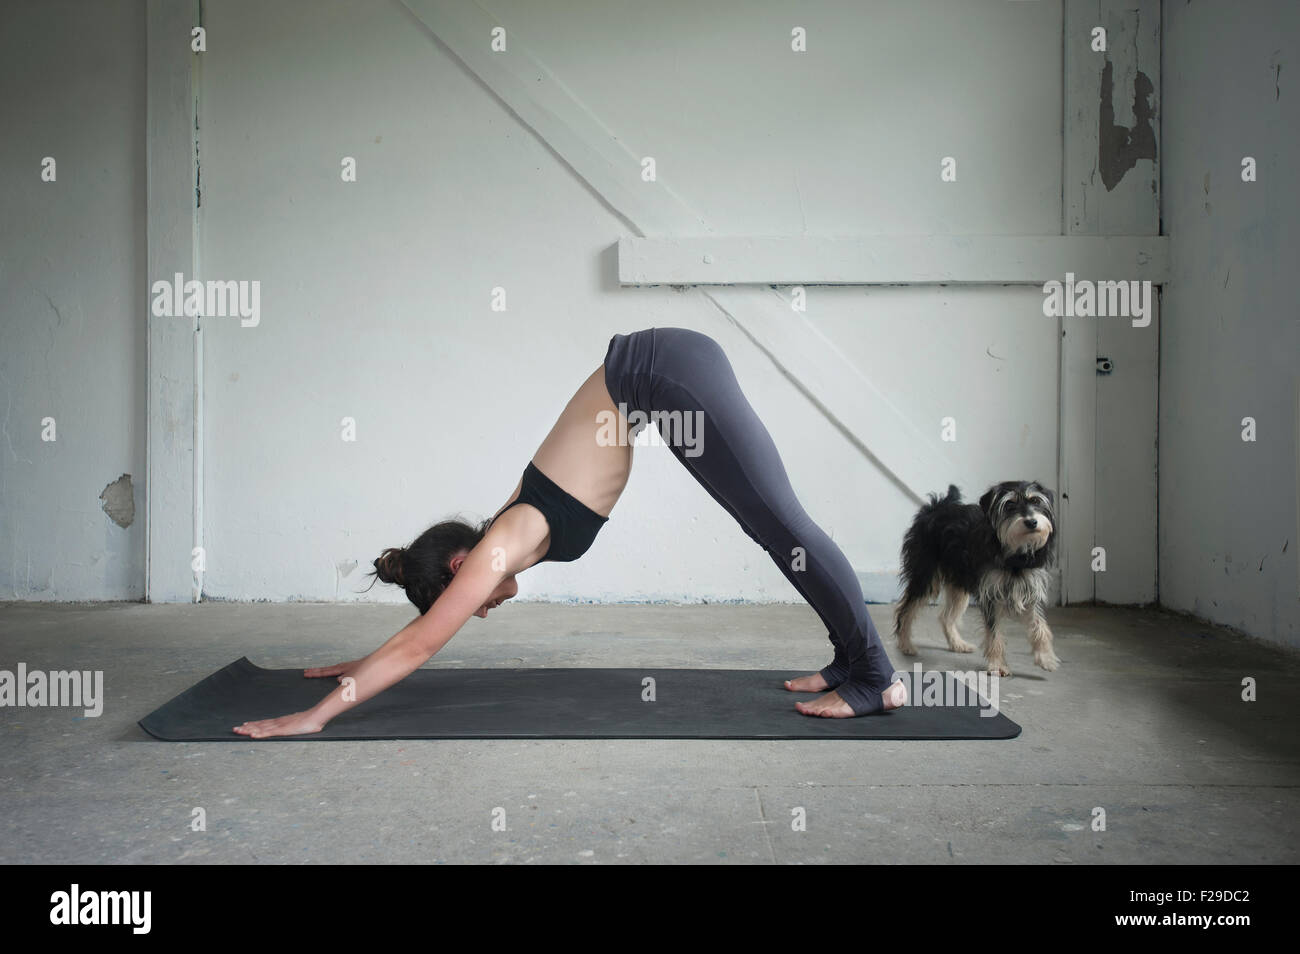 Mid adult woman practicing downward facing dog pose in yoga studio, Munich, Bavaria, Germany - Stock Image